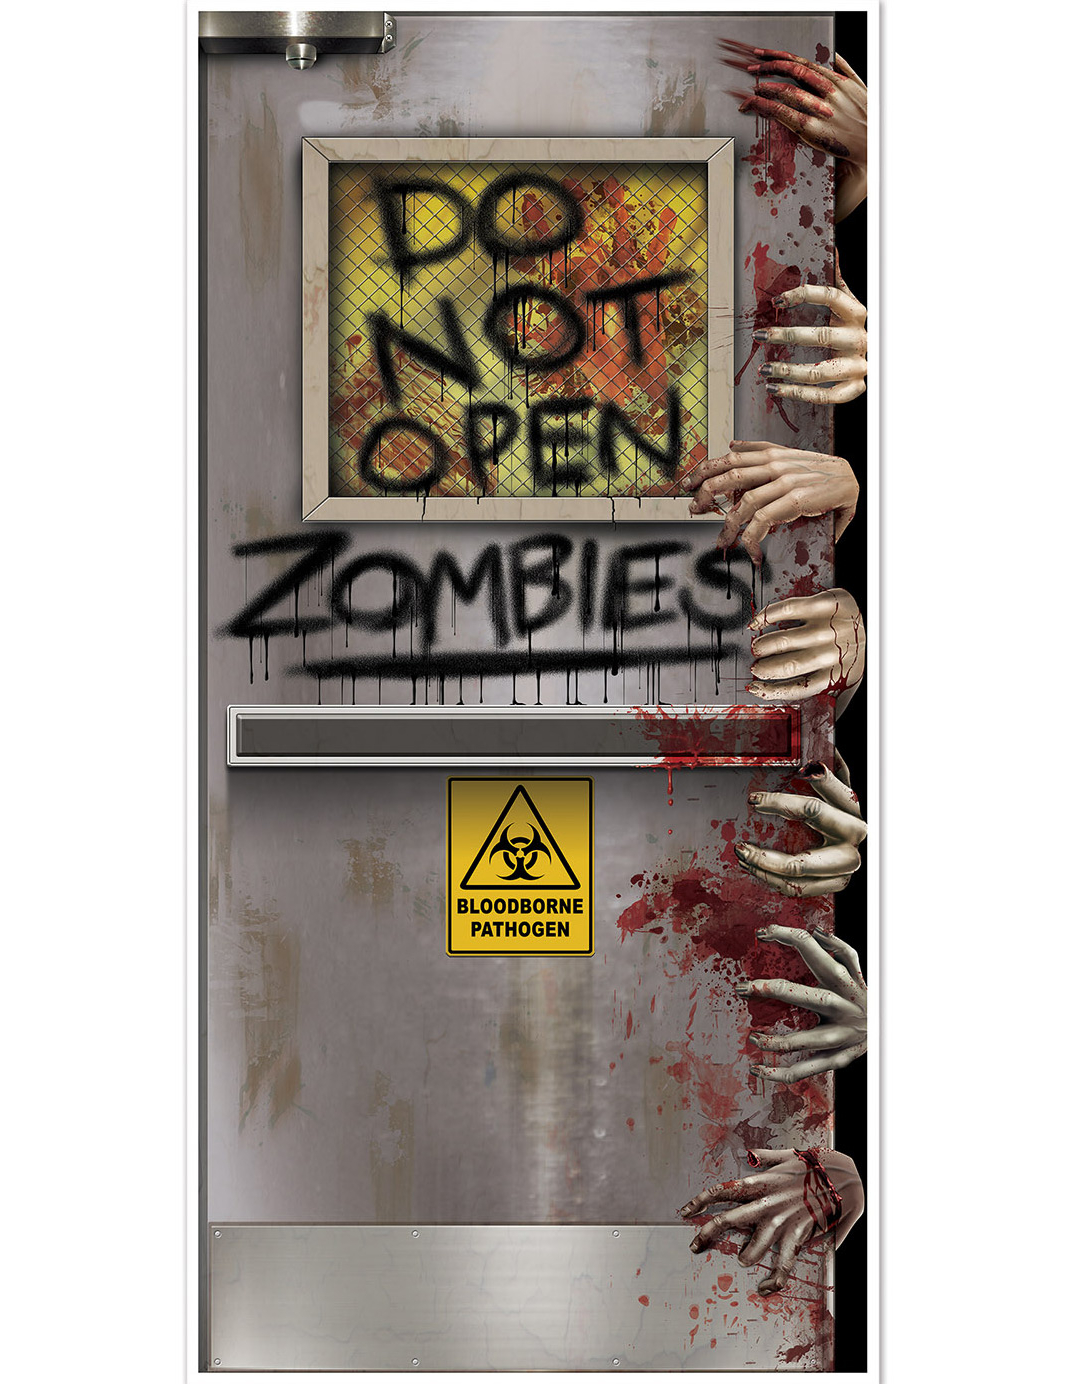 D coration de porte laboratoire zombie halloween for Decoration de porte a suspendre